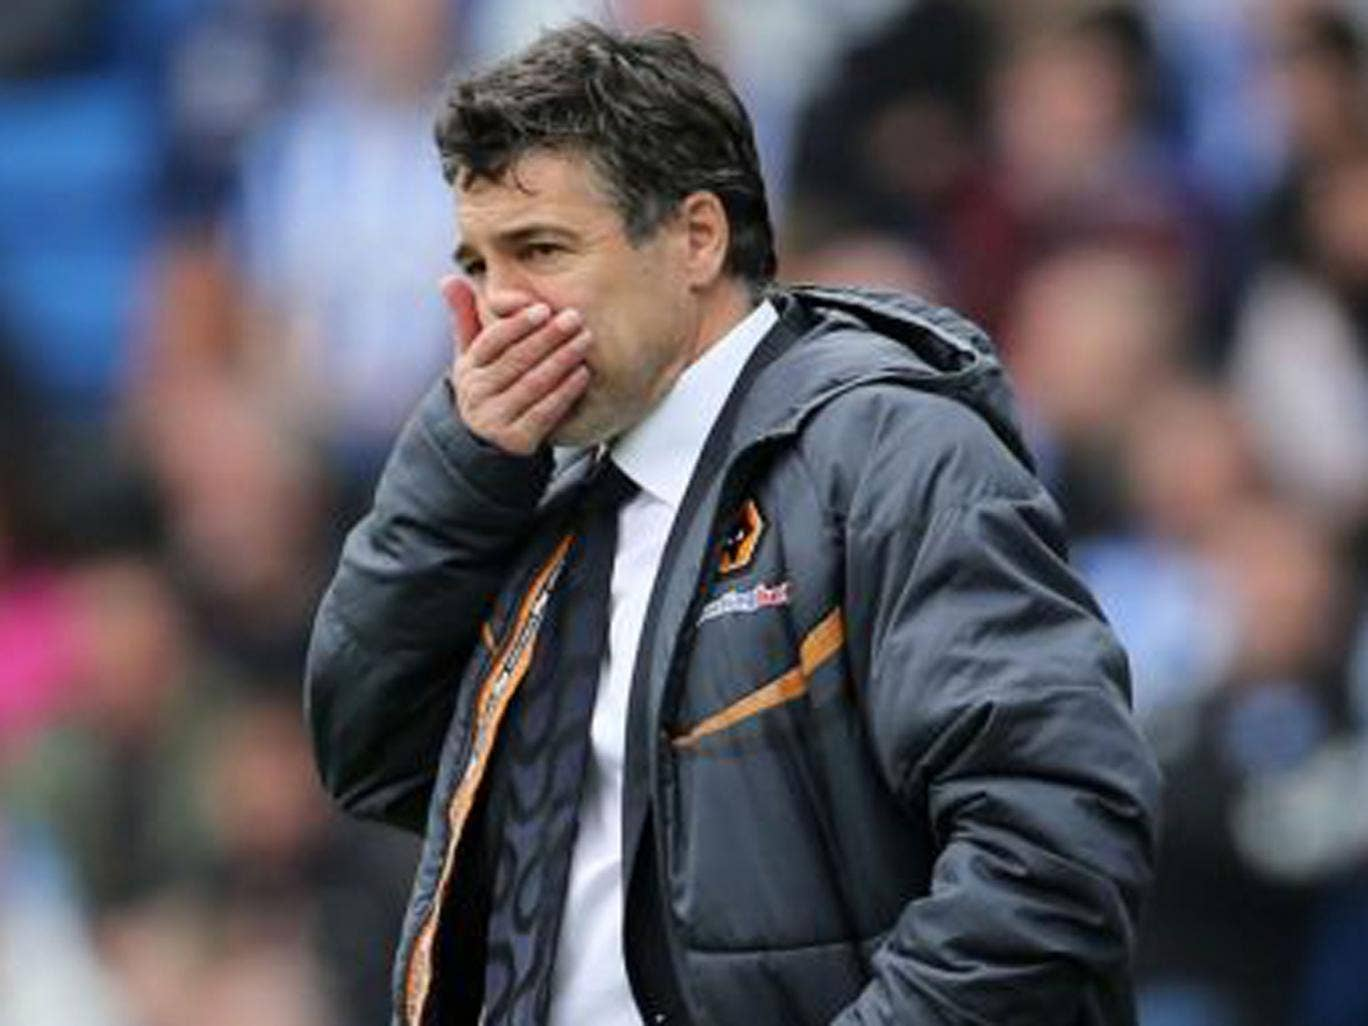 Wolves manager Dean Saunders says he is the right man for the job